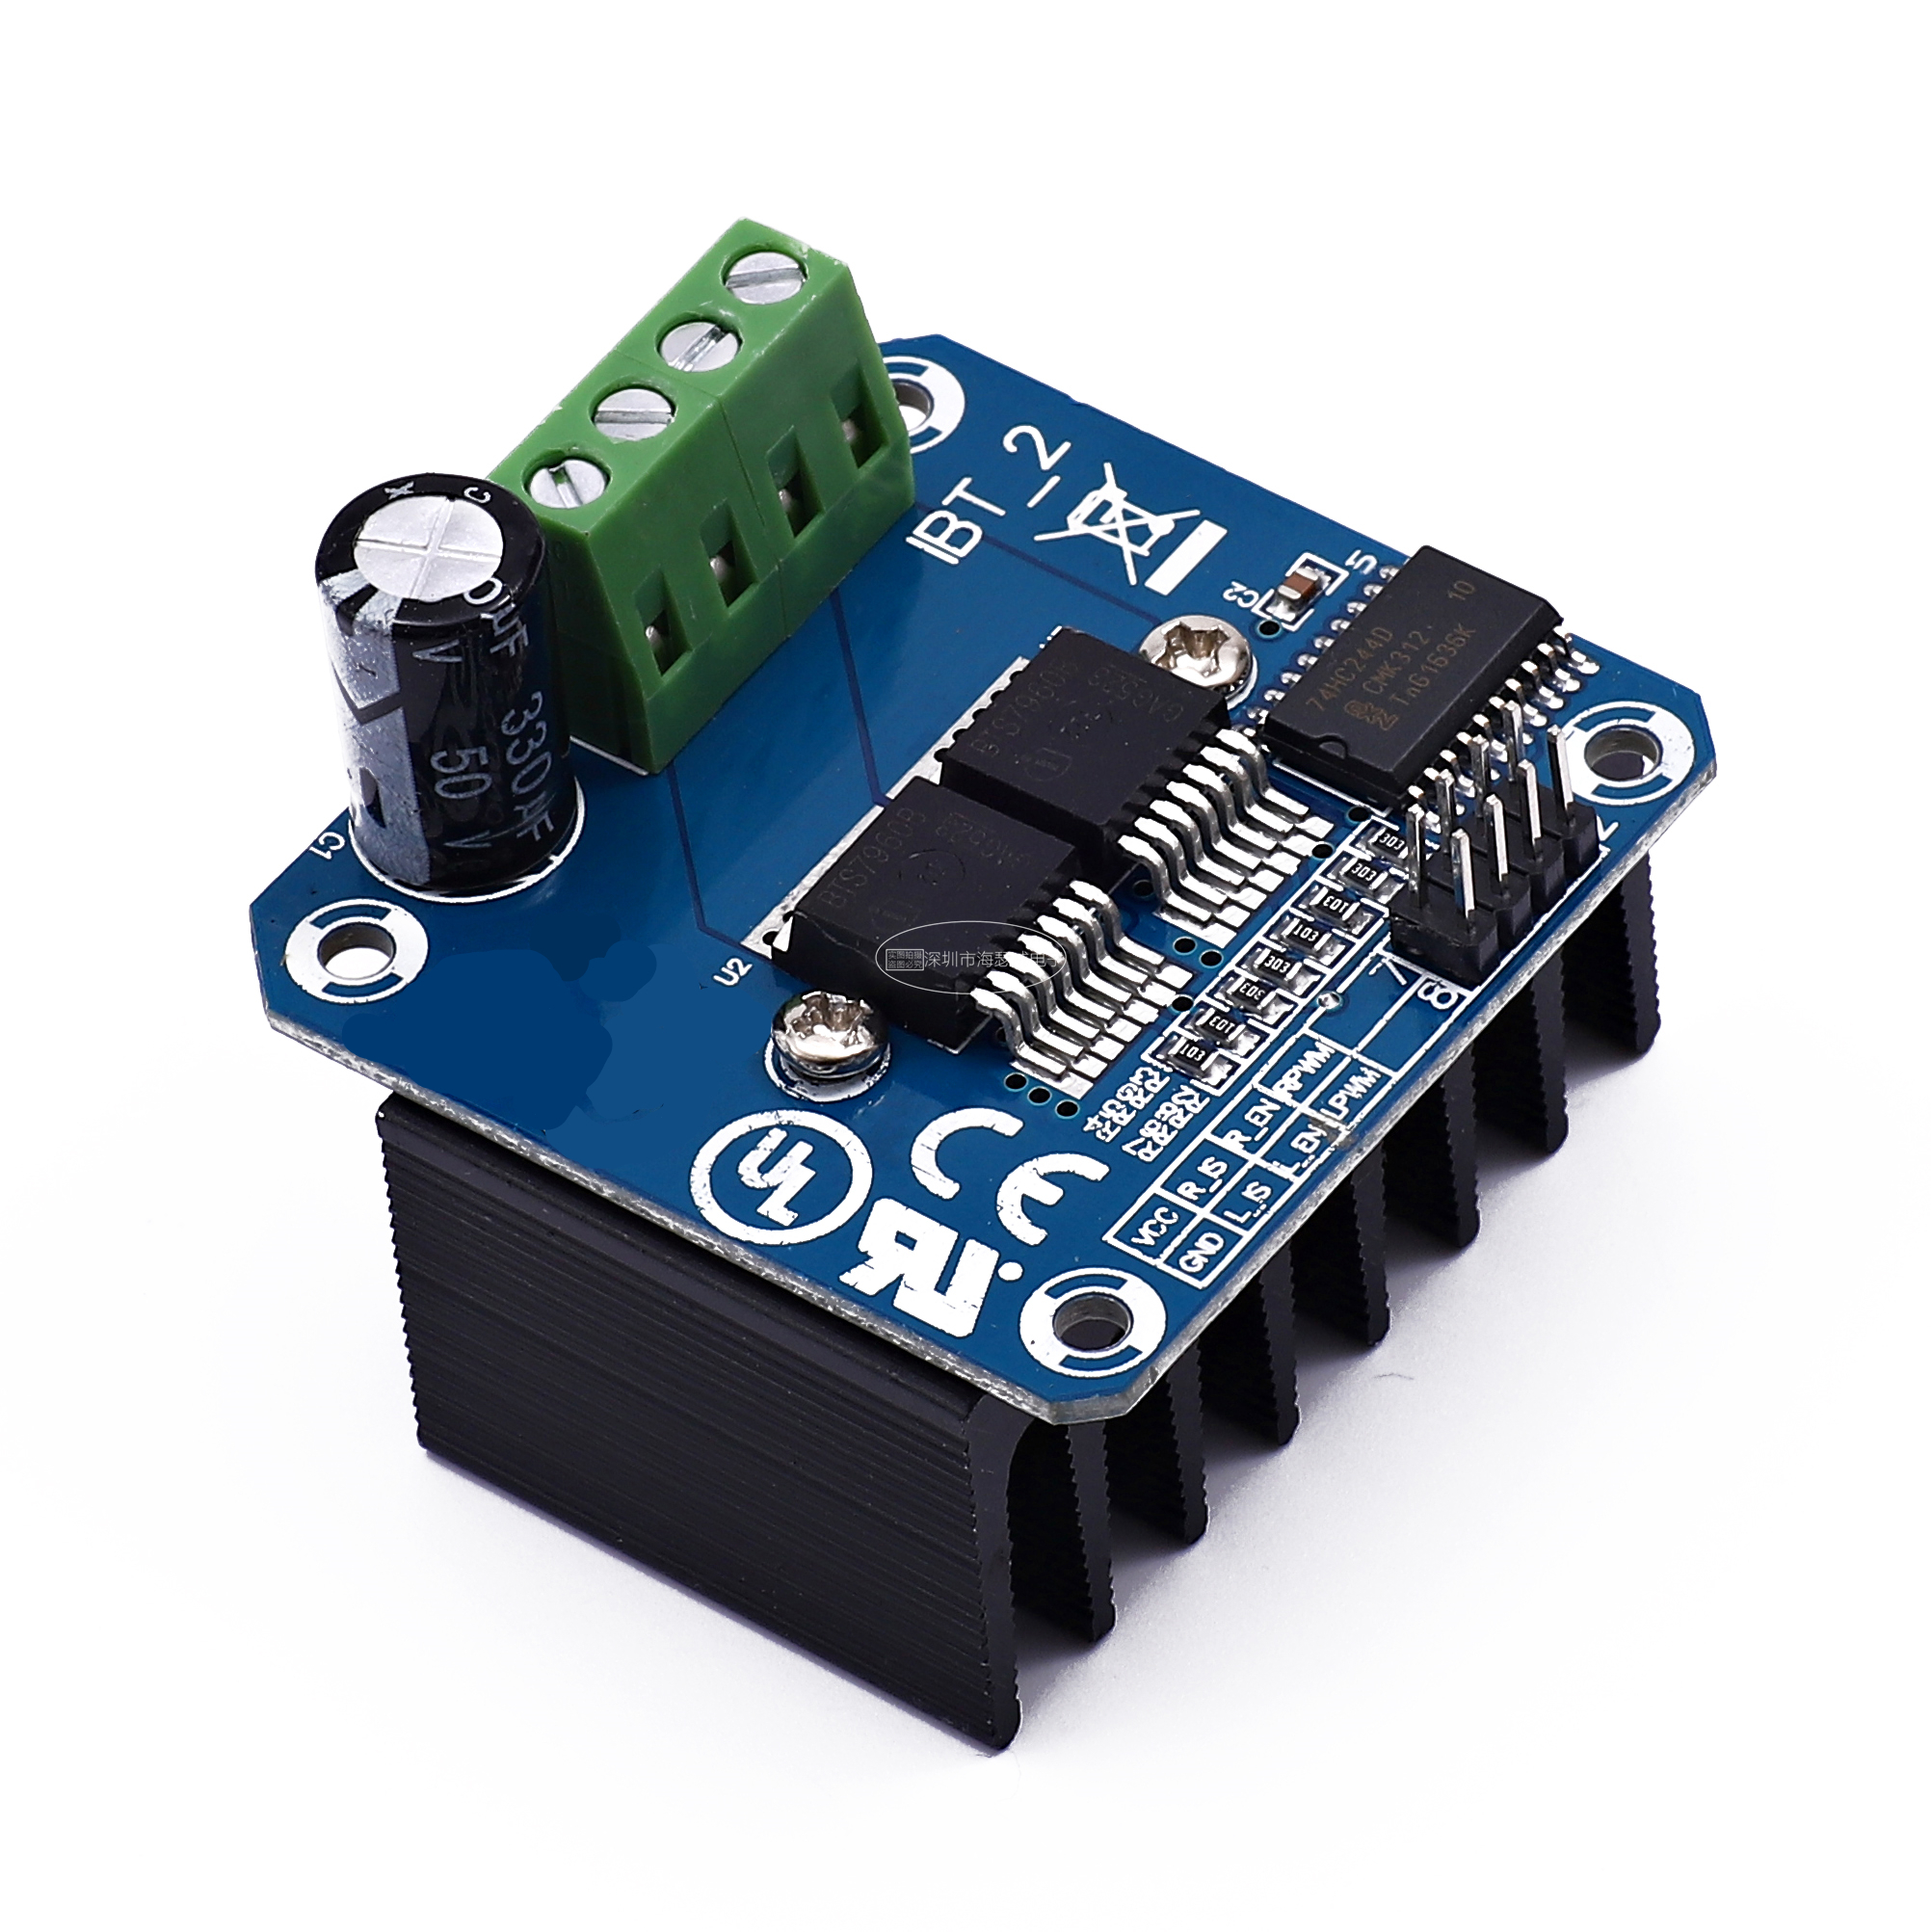 Sensor Current Limiting Control Semiconductor Refrigeration Drive Module BTS7960 43A For High Power Intelligent Vehicle